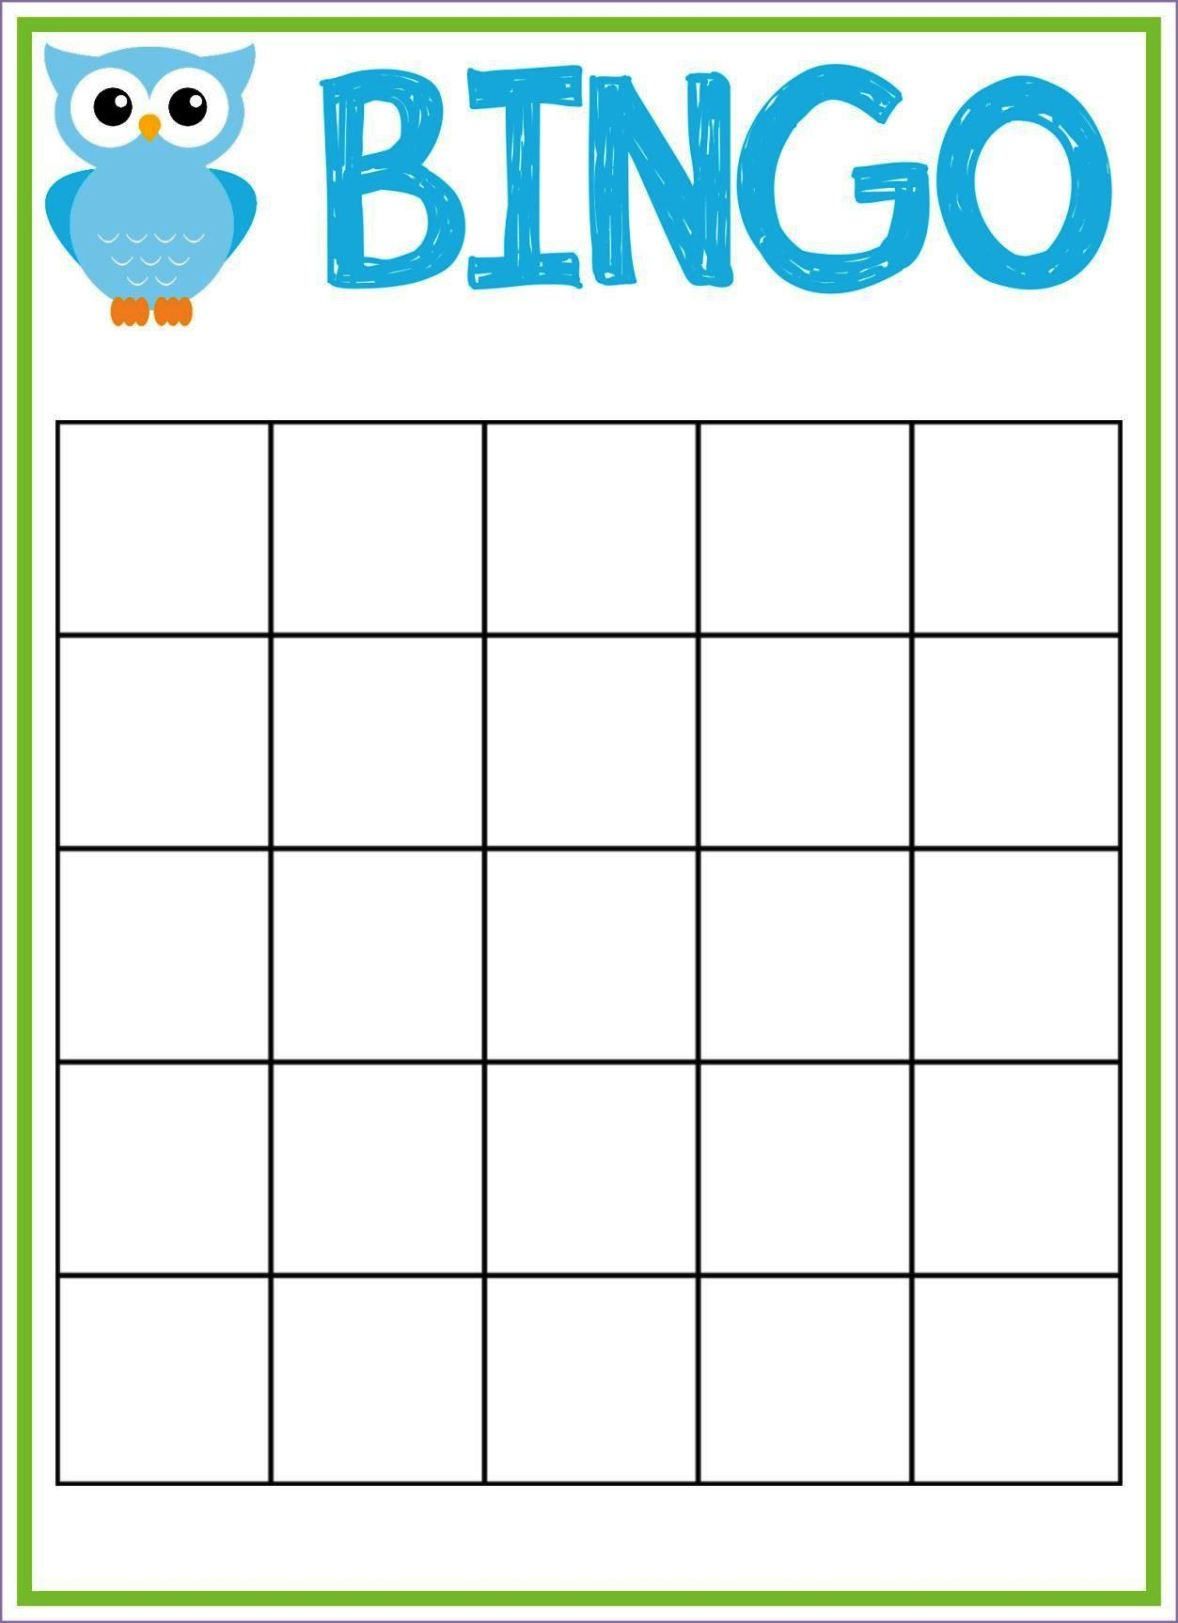 bingo sheet template sampletemplatess sampletemplatess